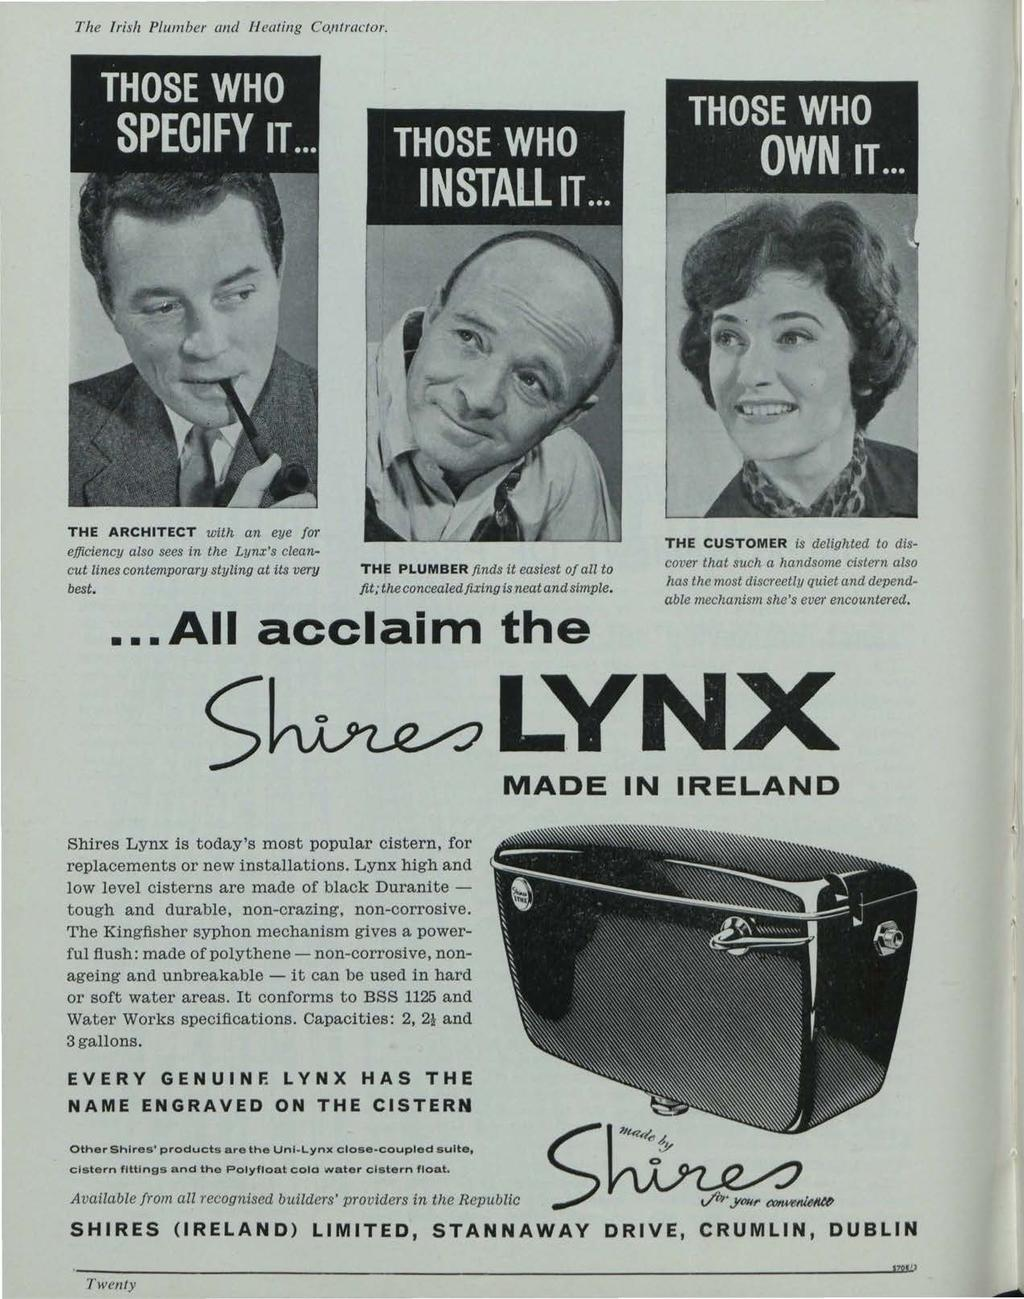 The Irish Plumber and l1 eating Co.ntractor. Building Services News, Vol. 2, Iss. 12 [1963], Art. 1 THE ARCHITECT with an eye [or efficienc?